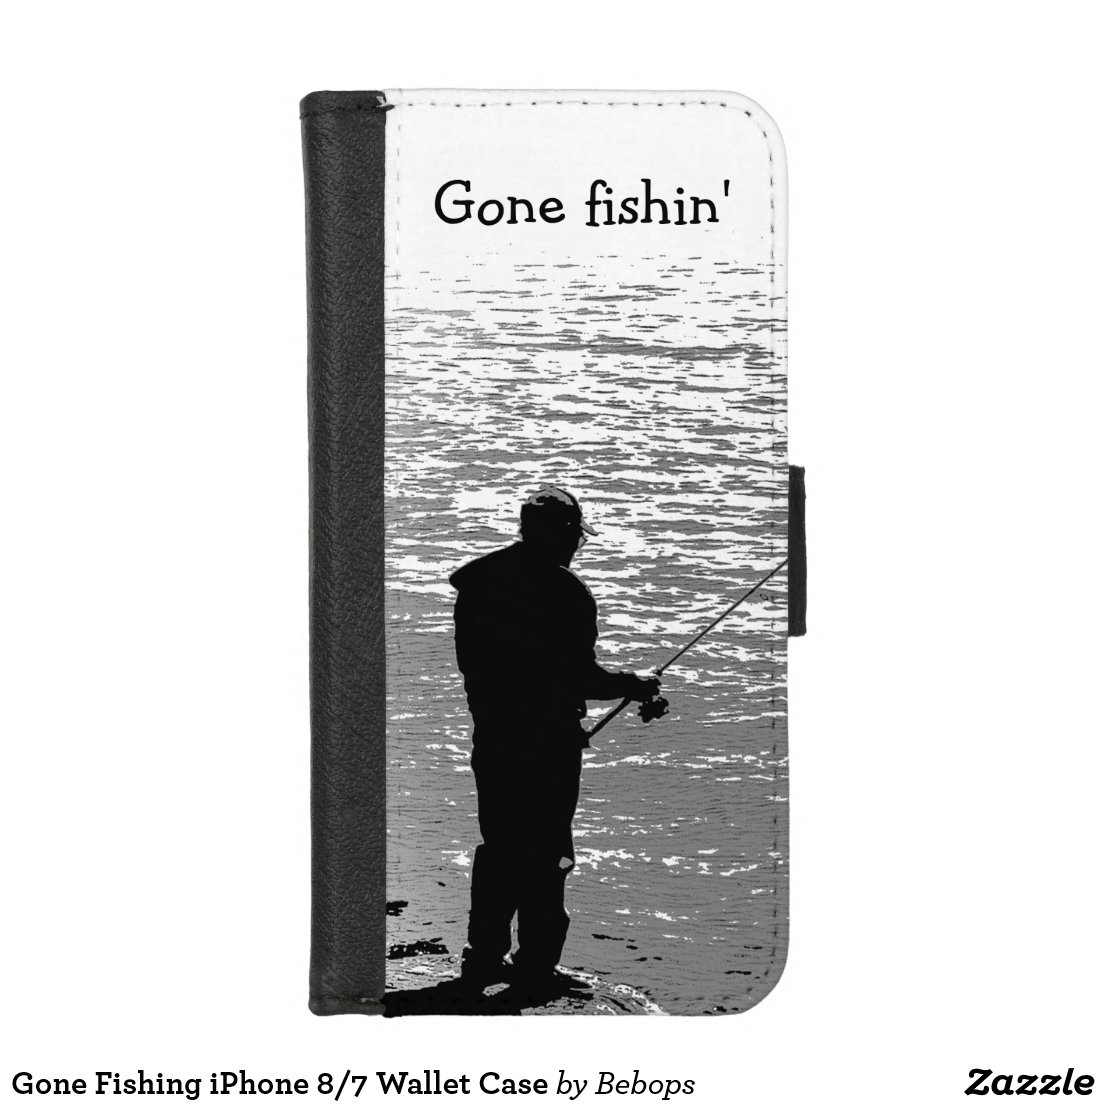 Gone Fishing iPhone 8/7 Wallet Case